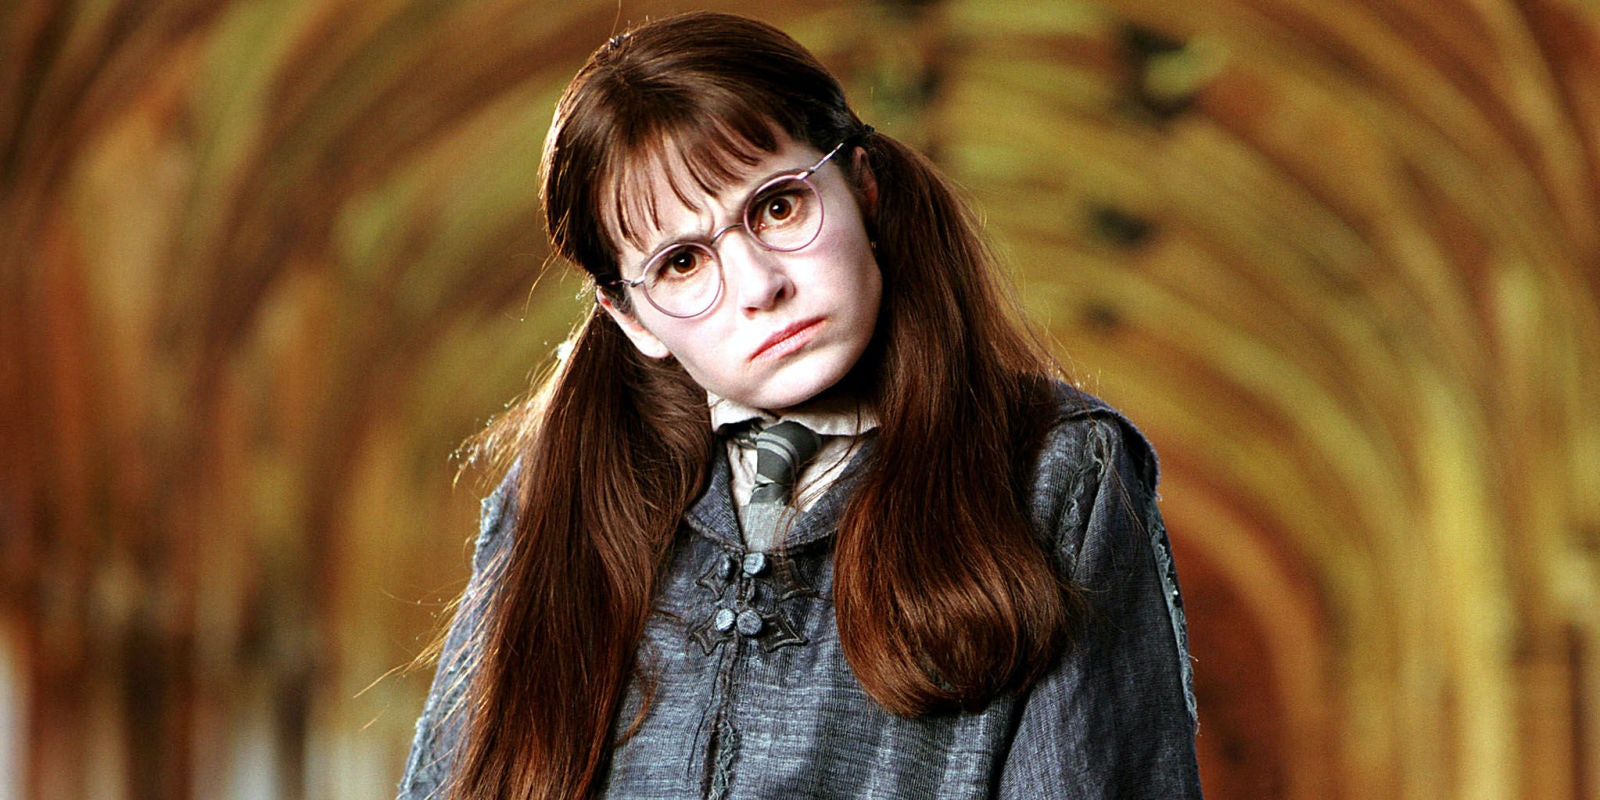 sc 1 st  Bustle & 15 Harry Potter Costume Ideas That Are Quirky And Halloween-Ready